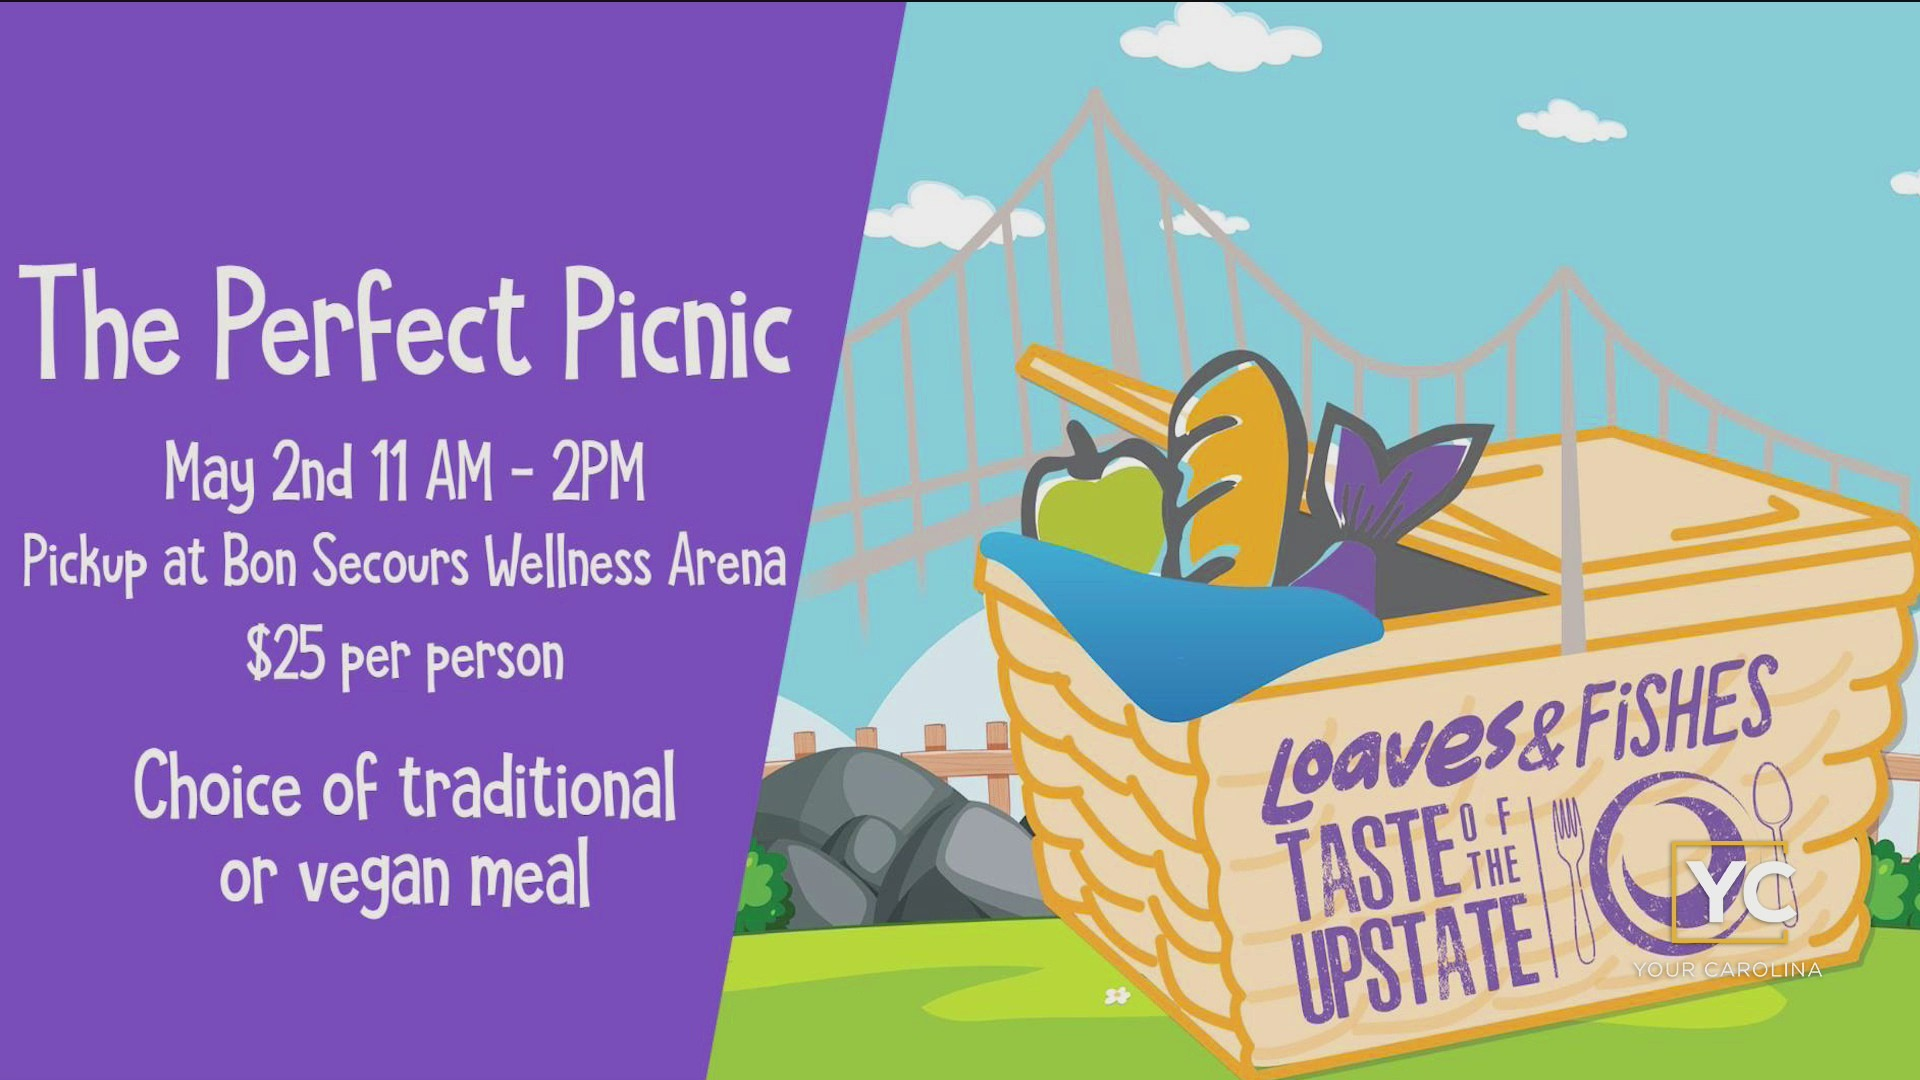 Taste of the Upstate: The Perfect Picnic